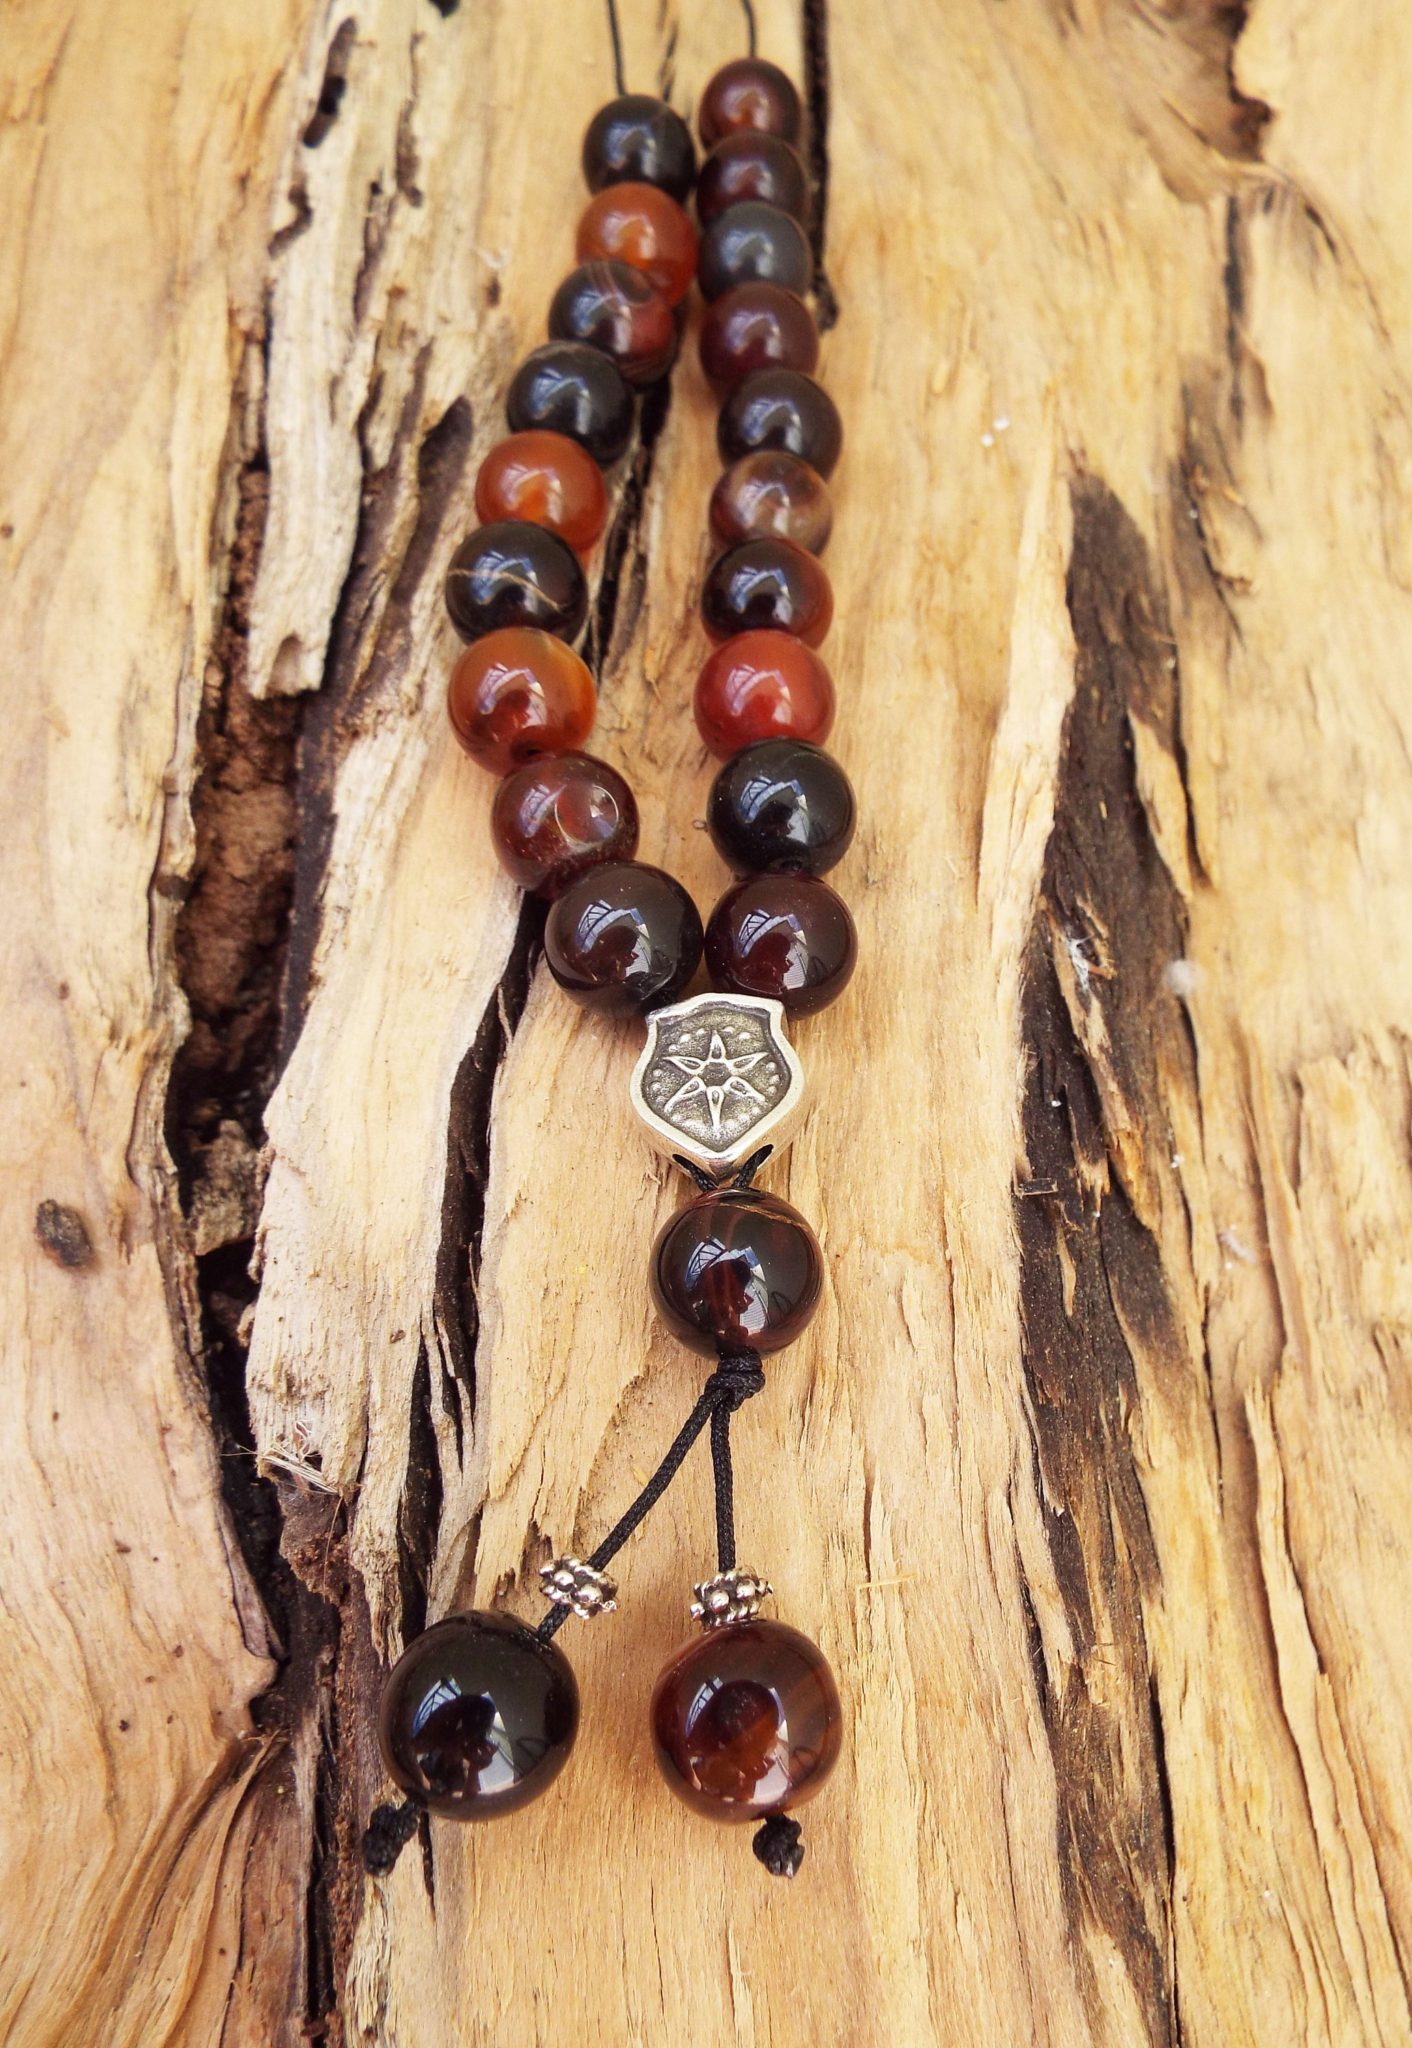 Komboloi Greek Worry Beads Carnelian Agate Prayer Beads Rosary Beads Turkish Tasbih Handmade Gemstone